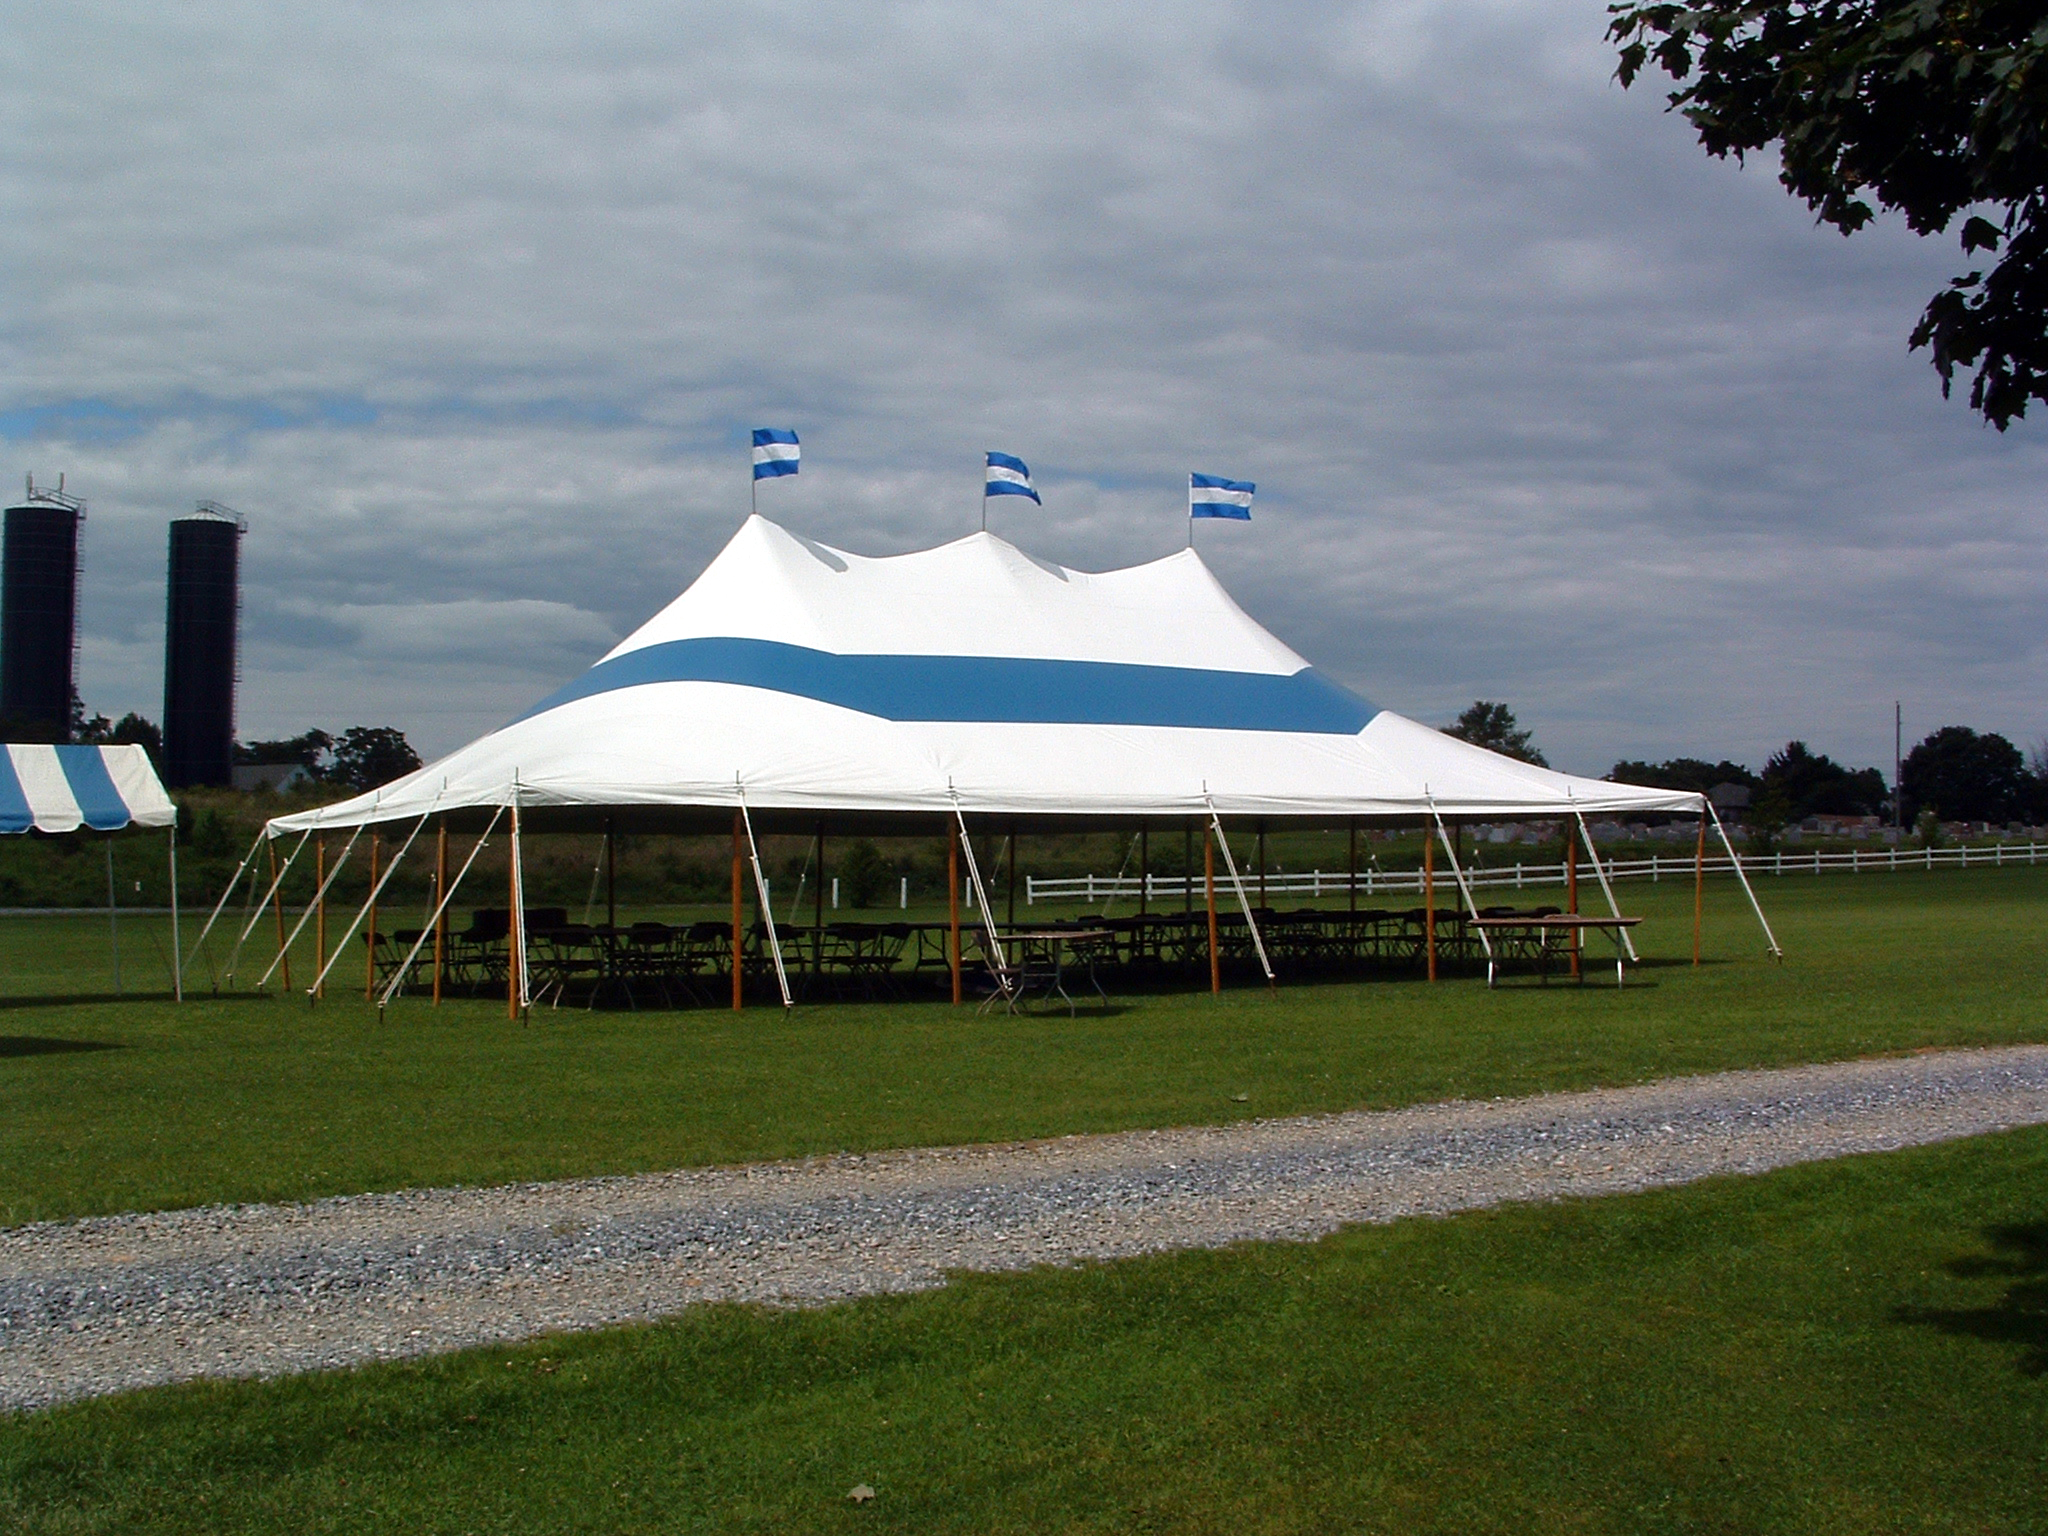 Blue party tent for rent in Fredrick, MD